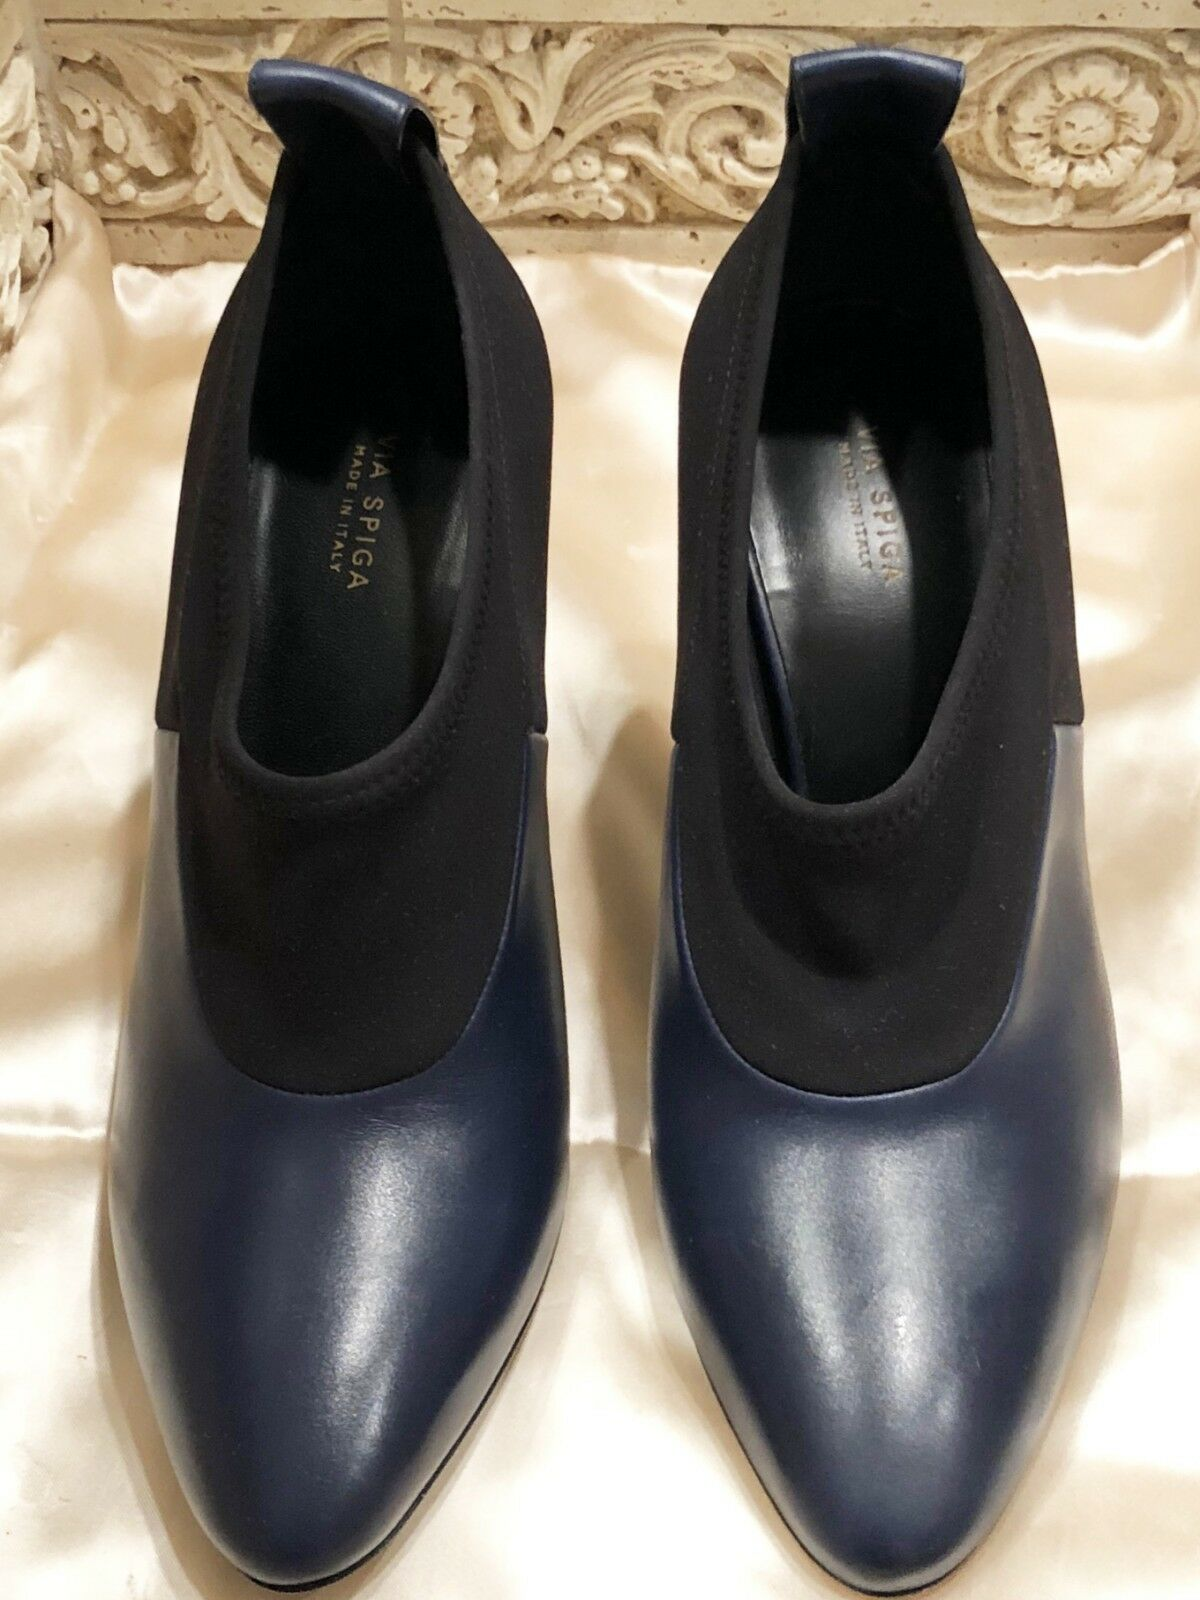 $295 NWT VIA SPIGA 'BAYNE' BLOCK HEEL NAVY BLACK 7 PUMP SIZE: 7 BLACK dd2add